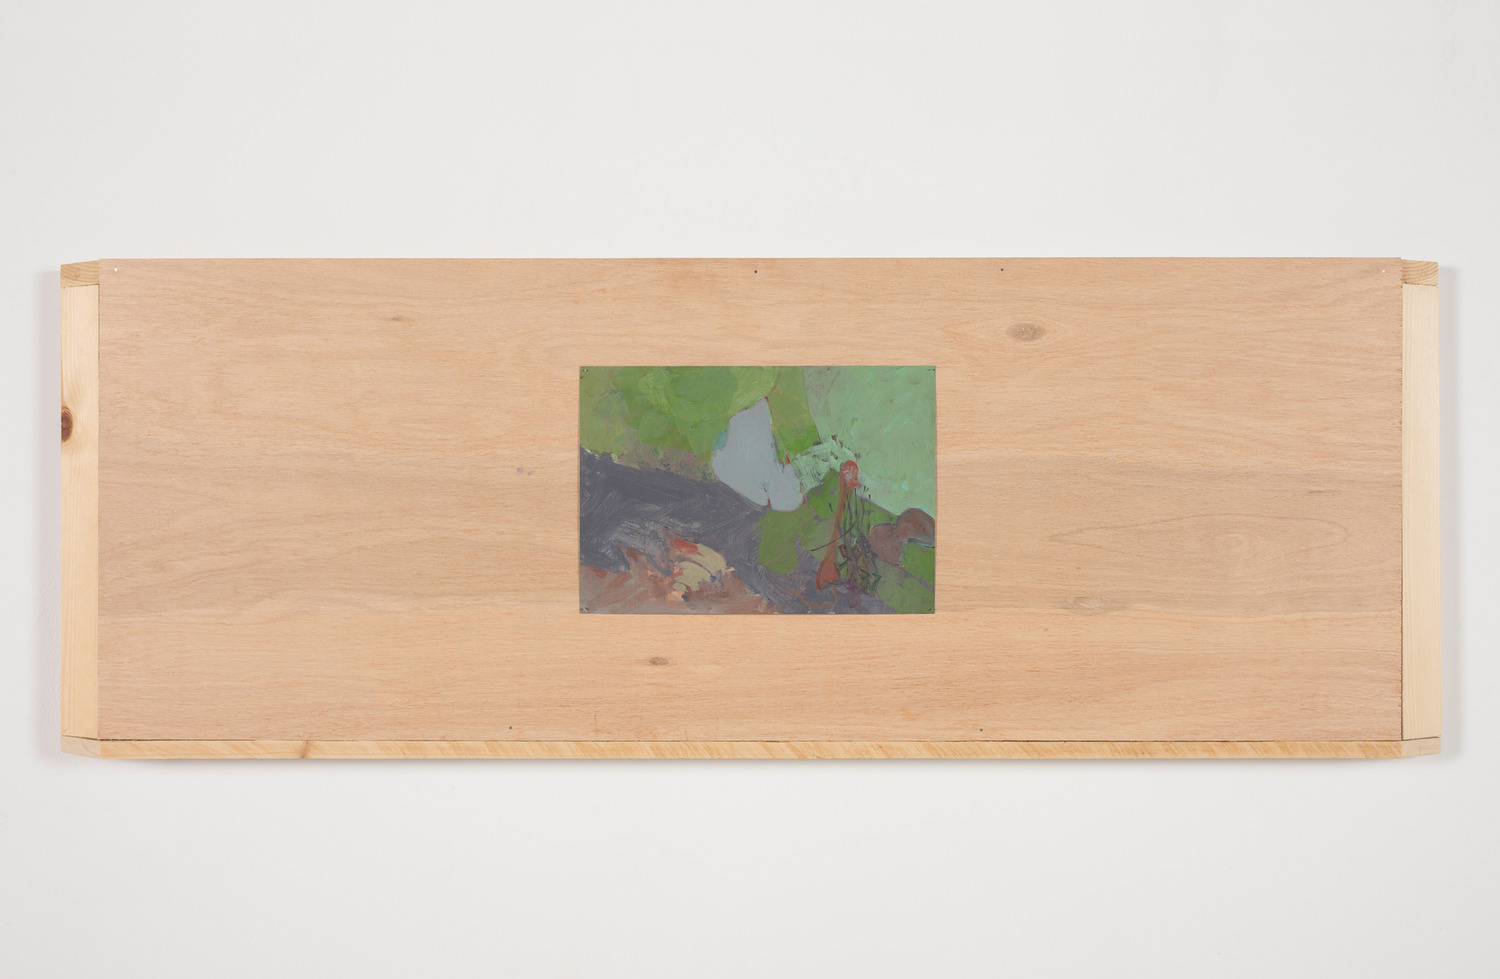 Rapid Change, 2015, Acrylic on paper, wood, 117 x 5 x 42.5 cm